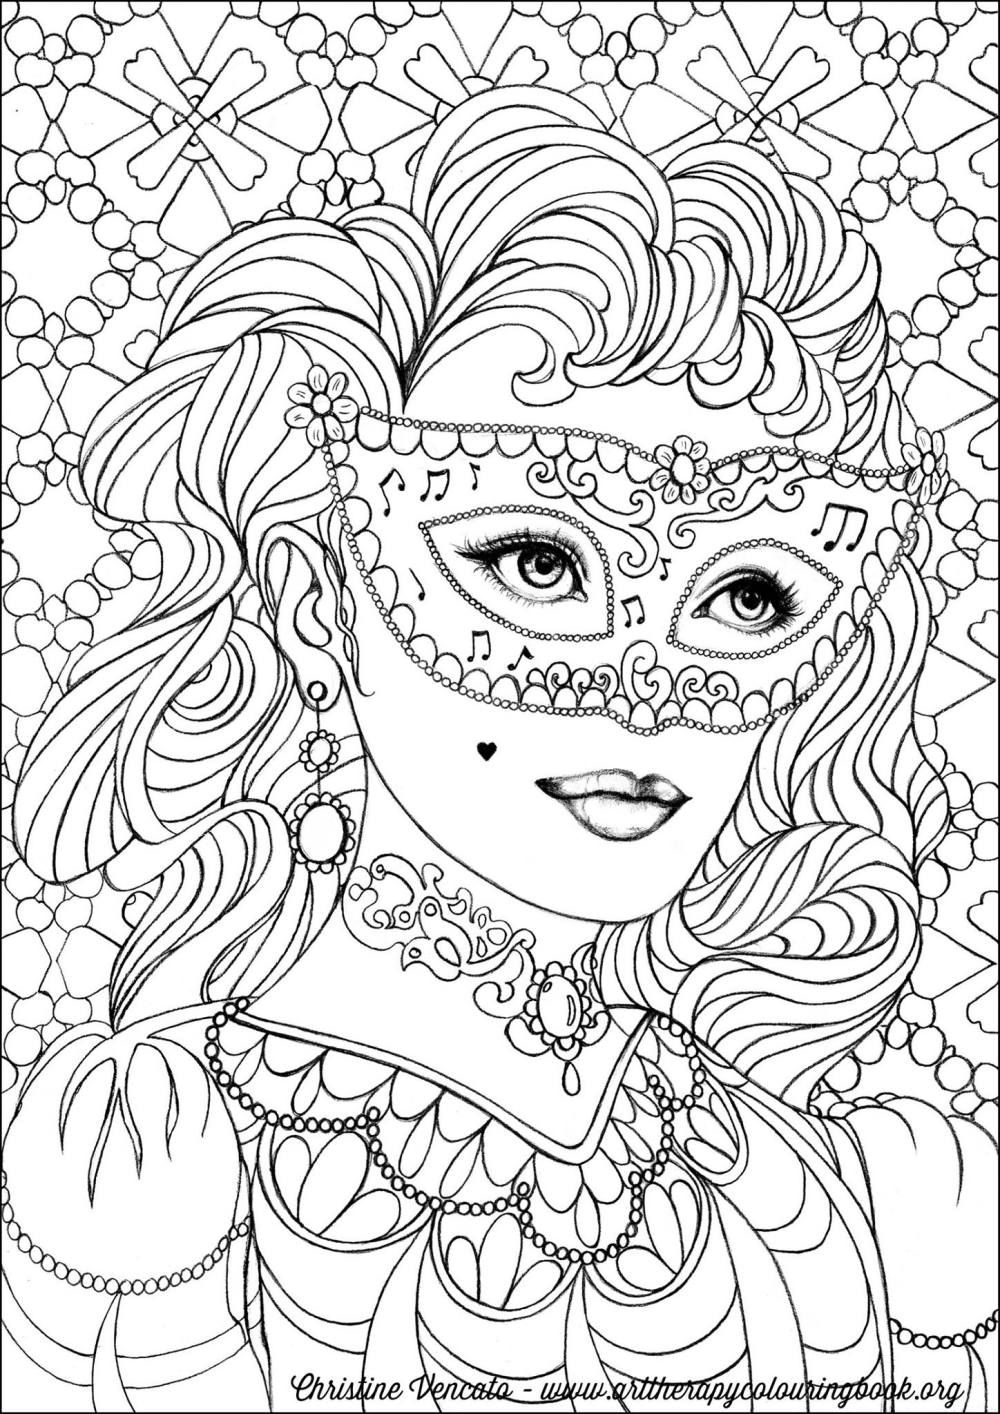 Free coloring page from adult coloring worldwide art by for Adult coloring pages printable